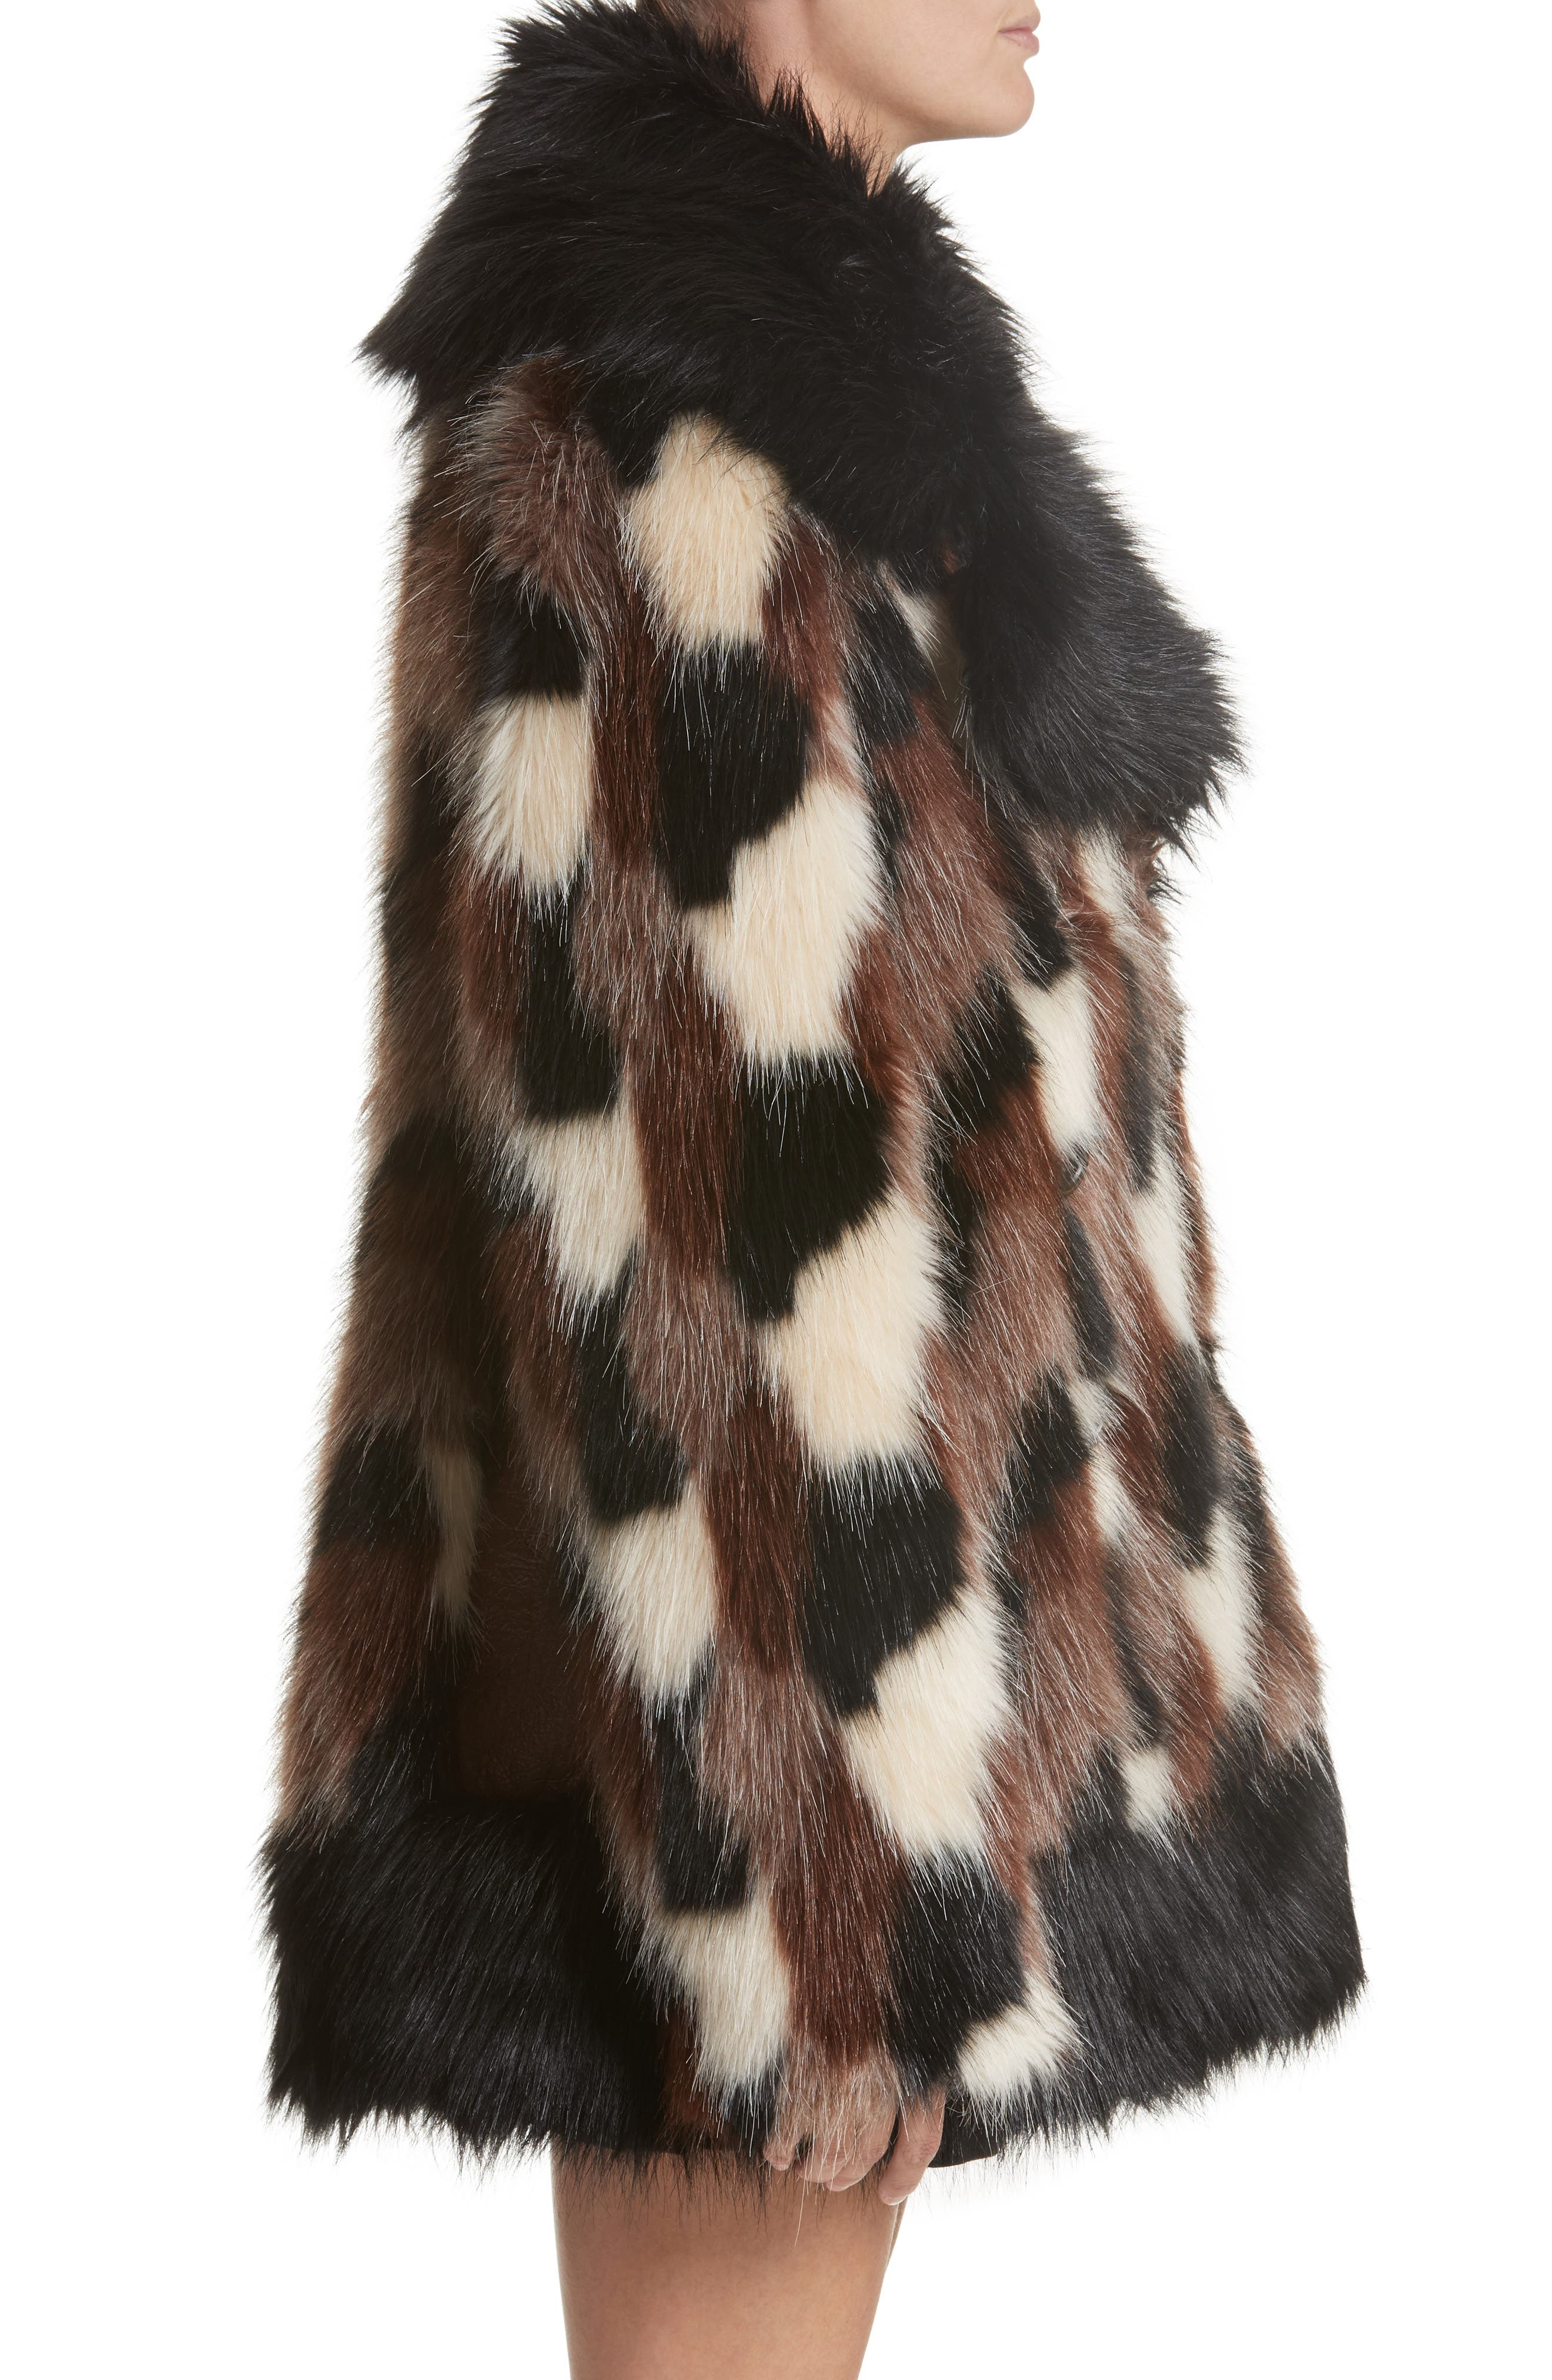 Patchwork Faux Fur Jacket,                             Alternate thumbnail 6, color,                             Black Multi